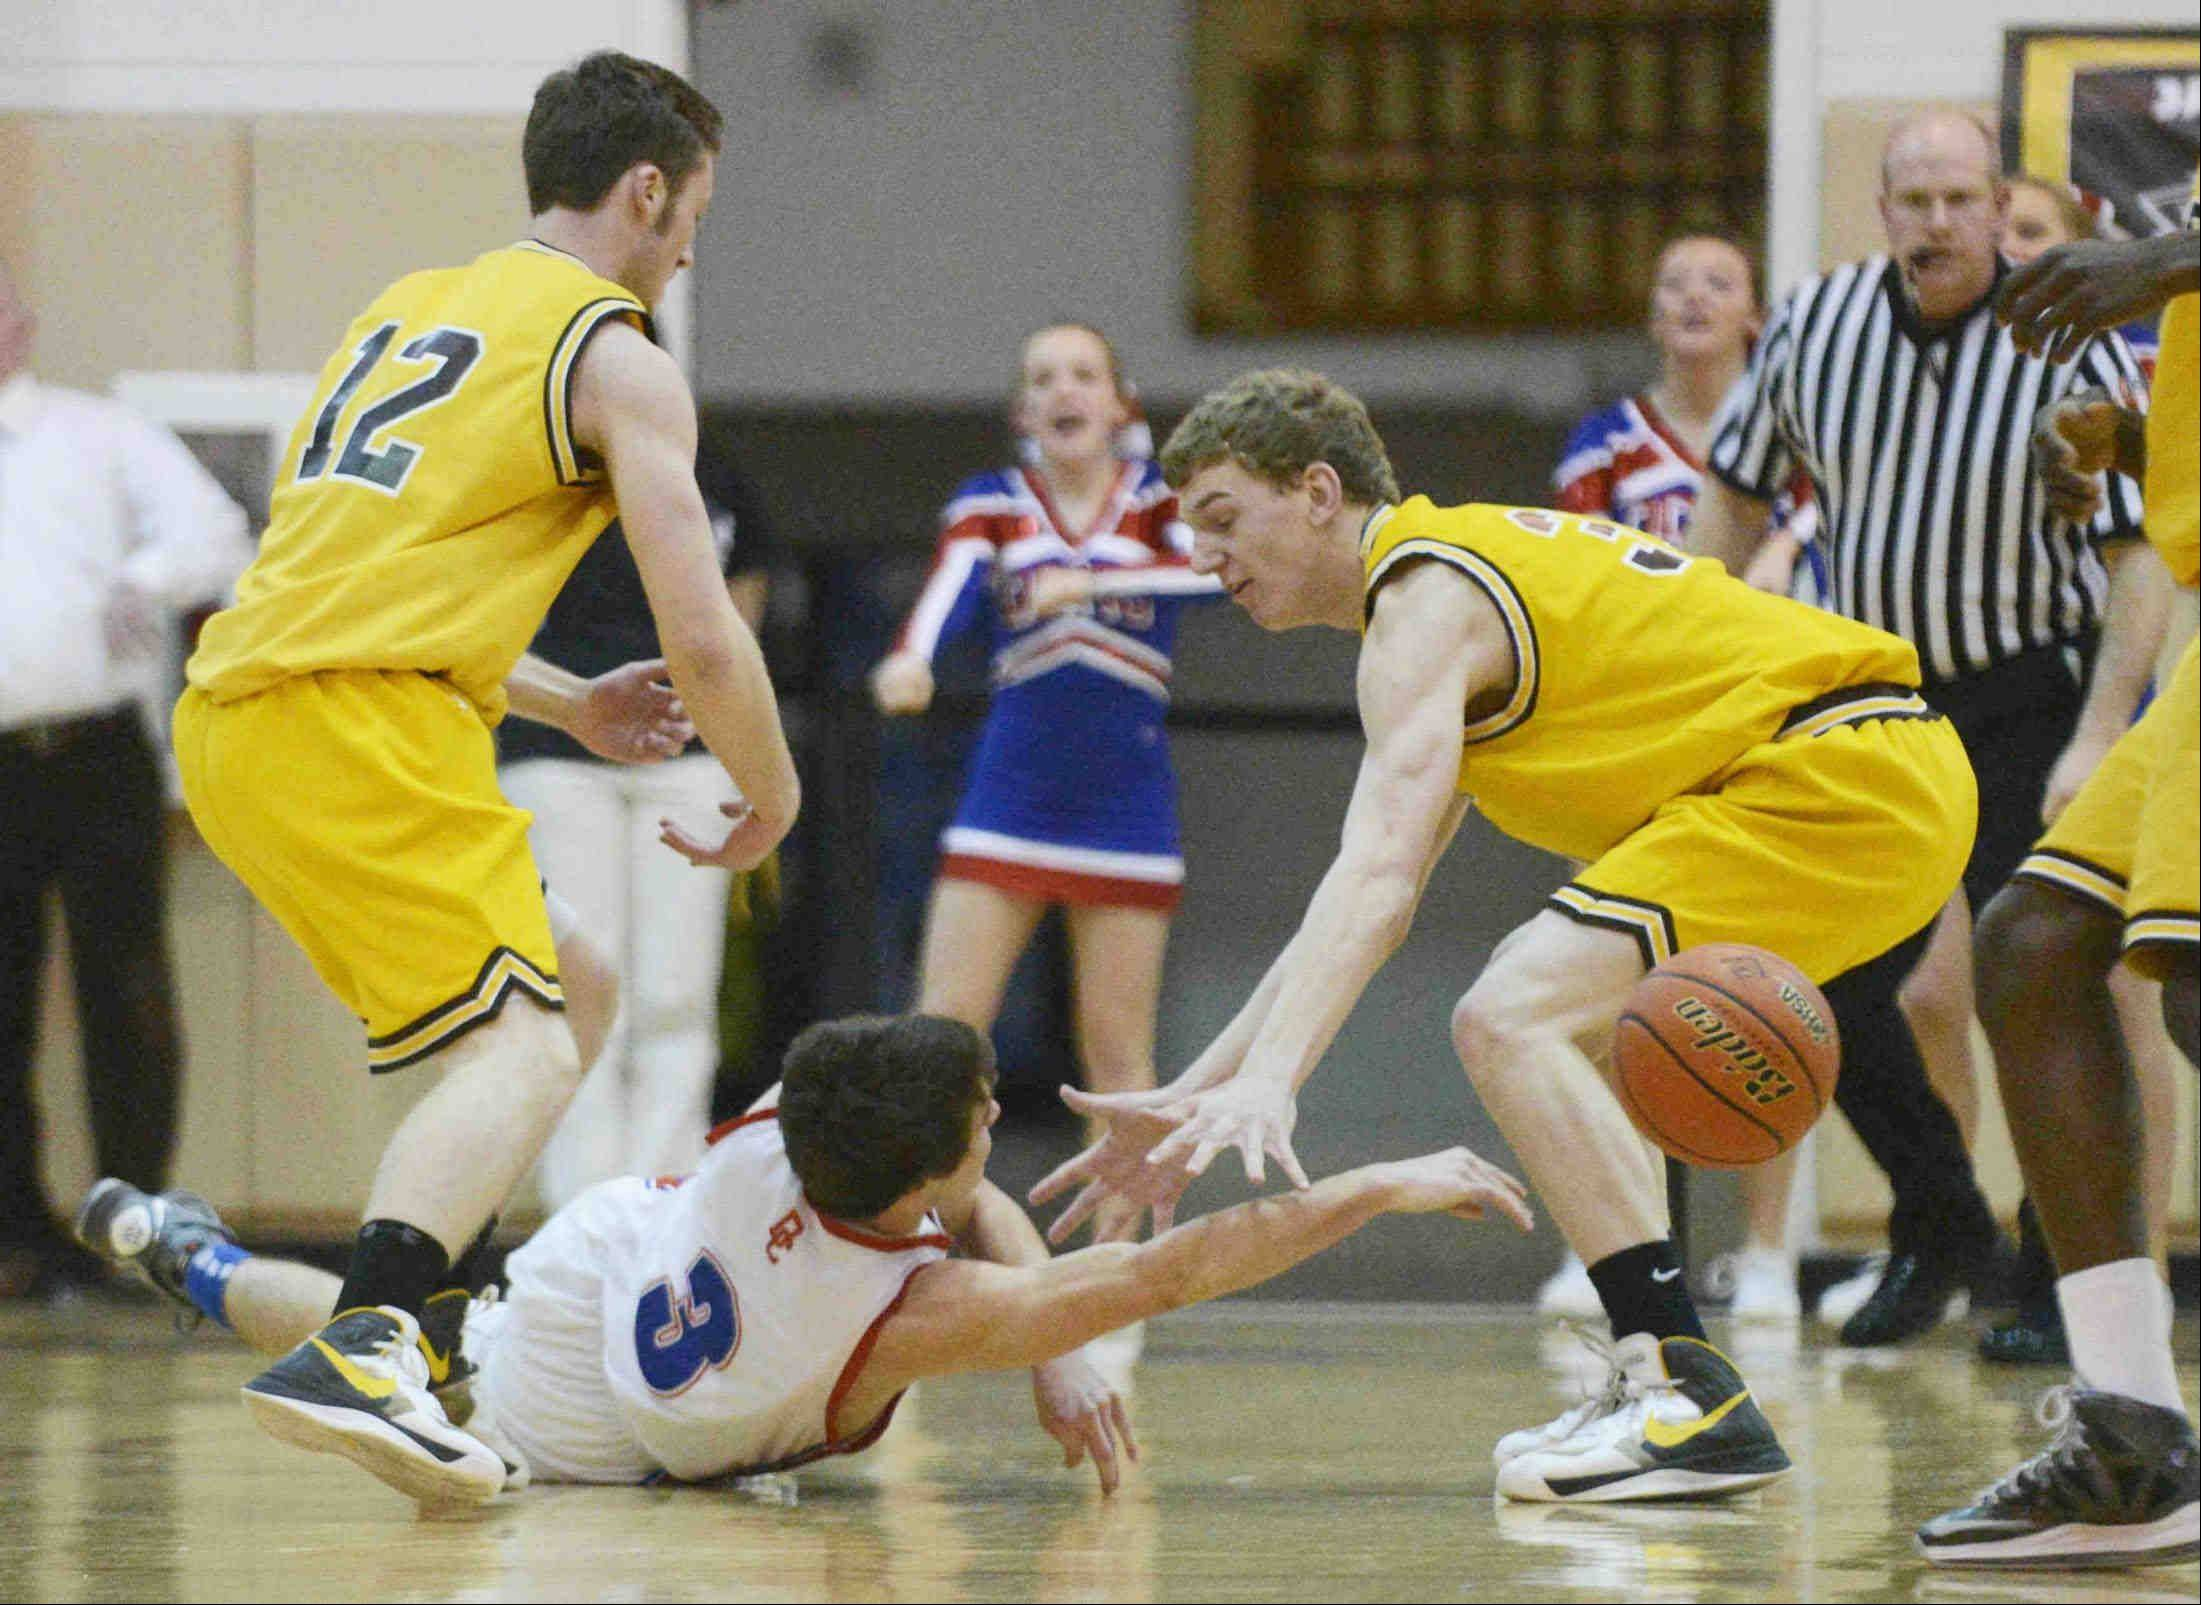 Images from the Dundee-Crown vs. Jacobs Class 4A regional game at Algonquin Wednesday night.